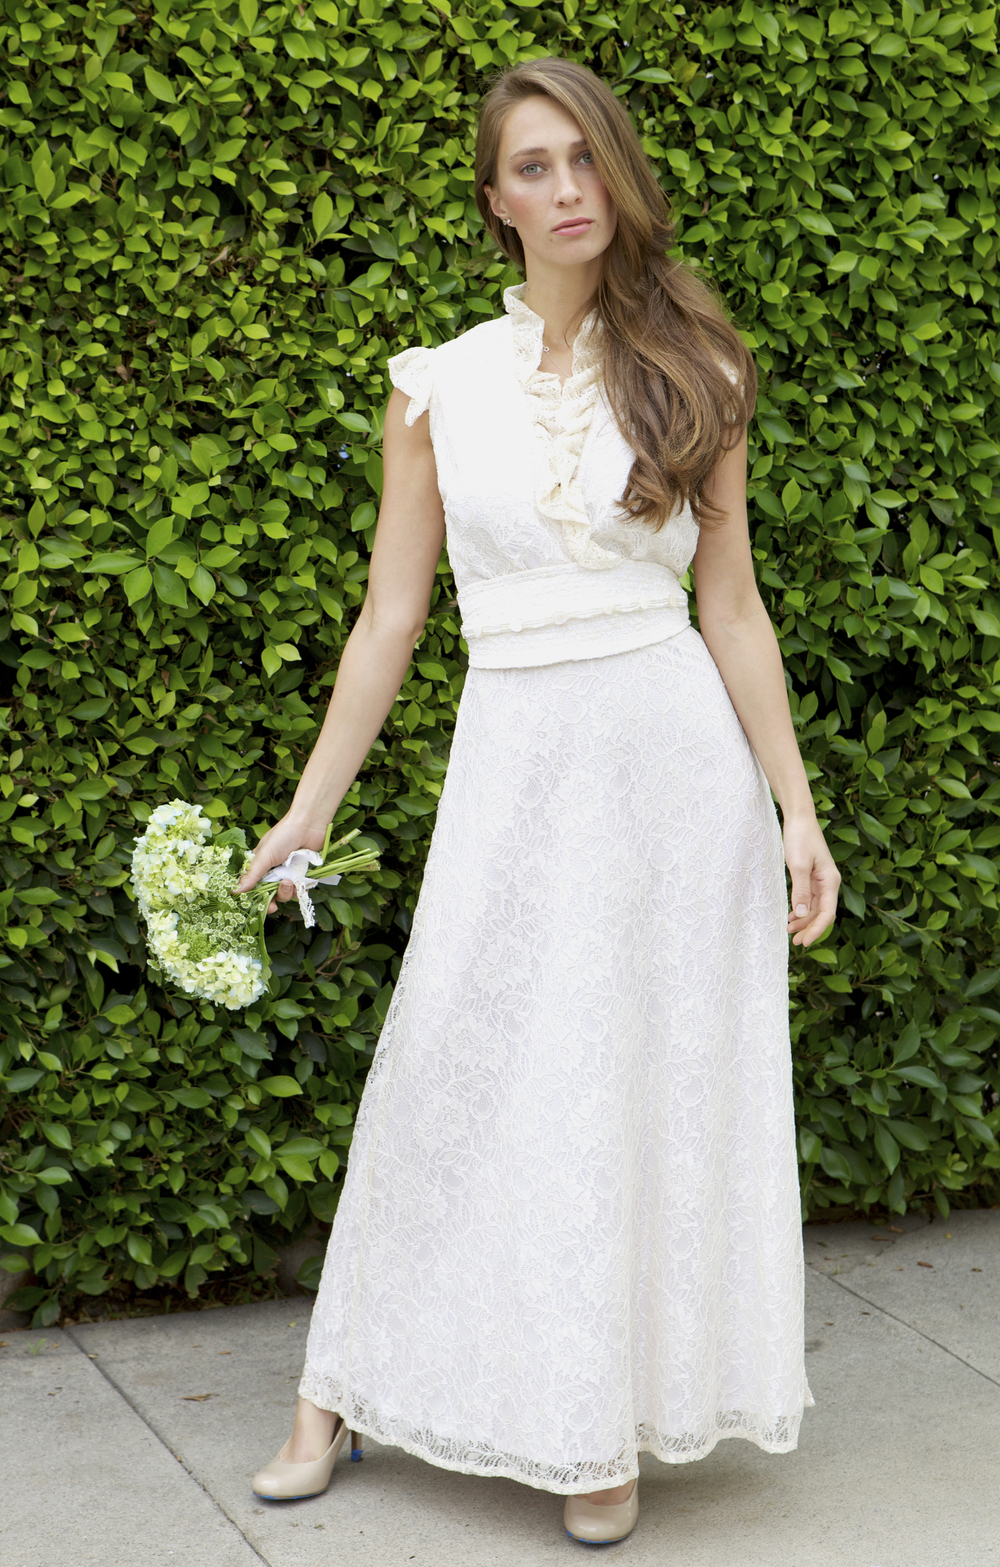 Ruffle edged lace wedding dress with beaded obi belt.